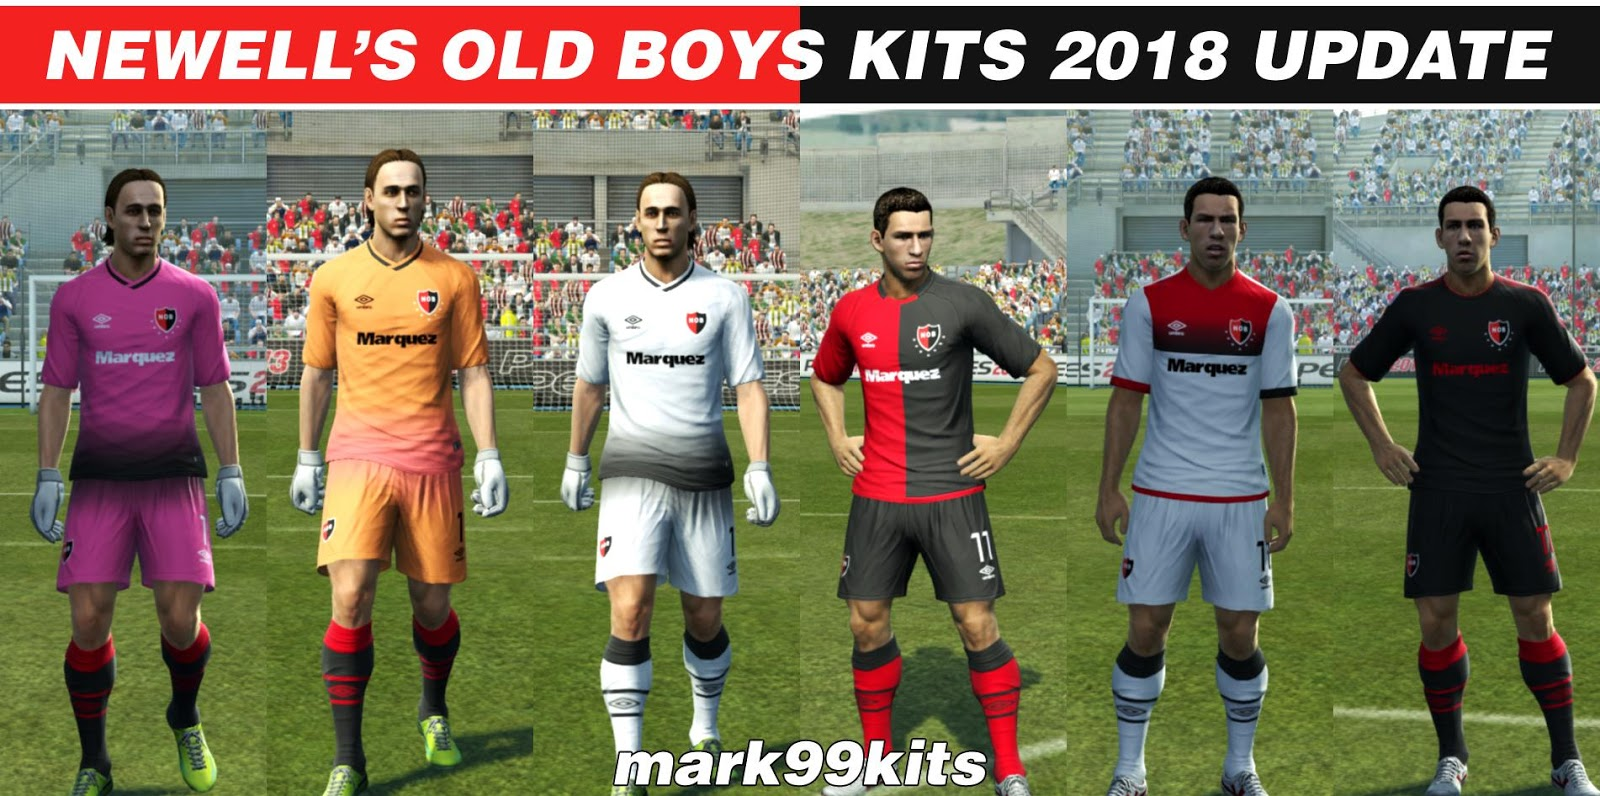 PES 2013 Newell's Old Boys Kits 2018 Update by mark99kits